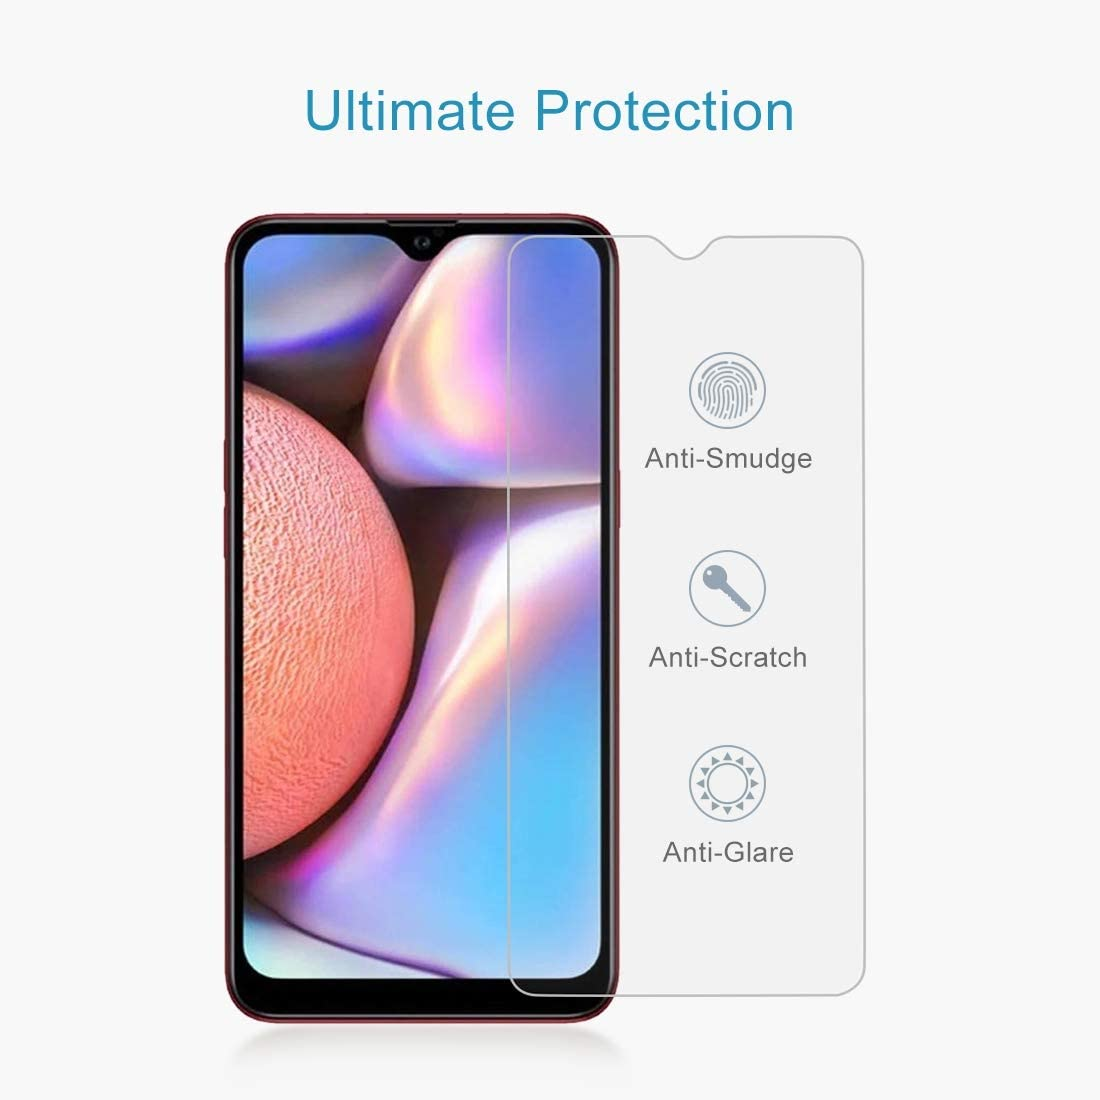 LGYD 50 PCS 0.26mm 9H 2.5D Tempered Glass Film for Galaxy A10s Screen Protector Film